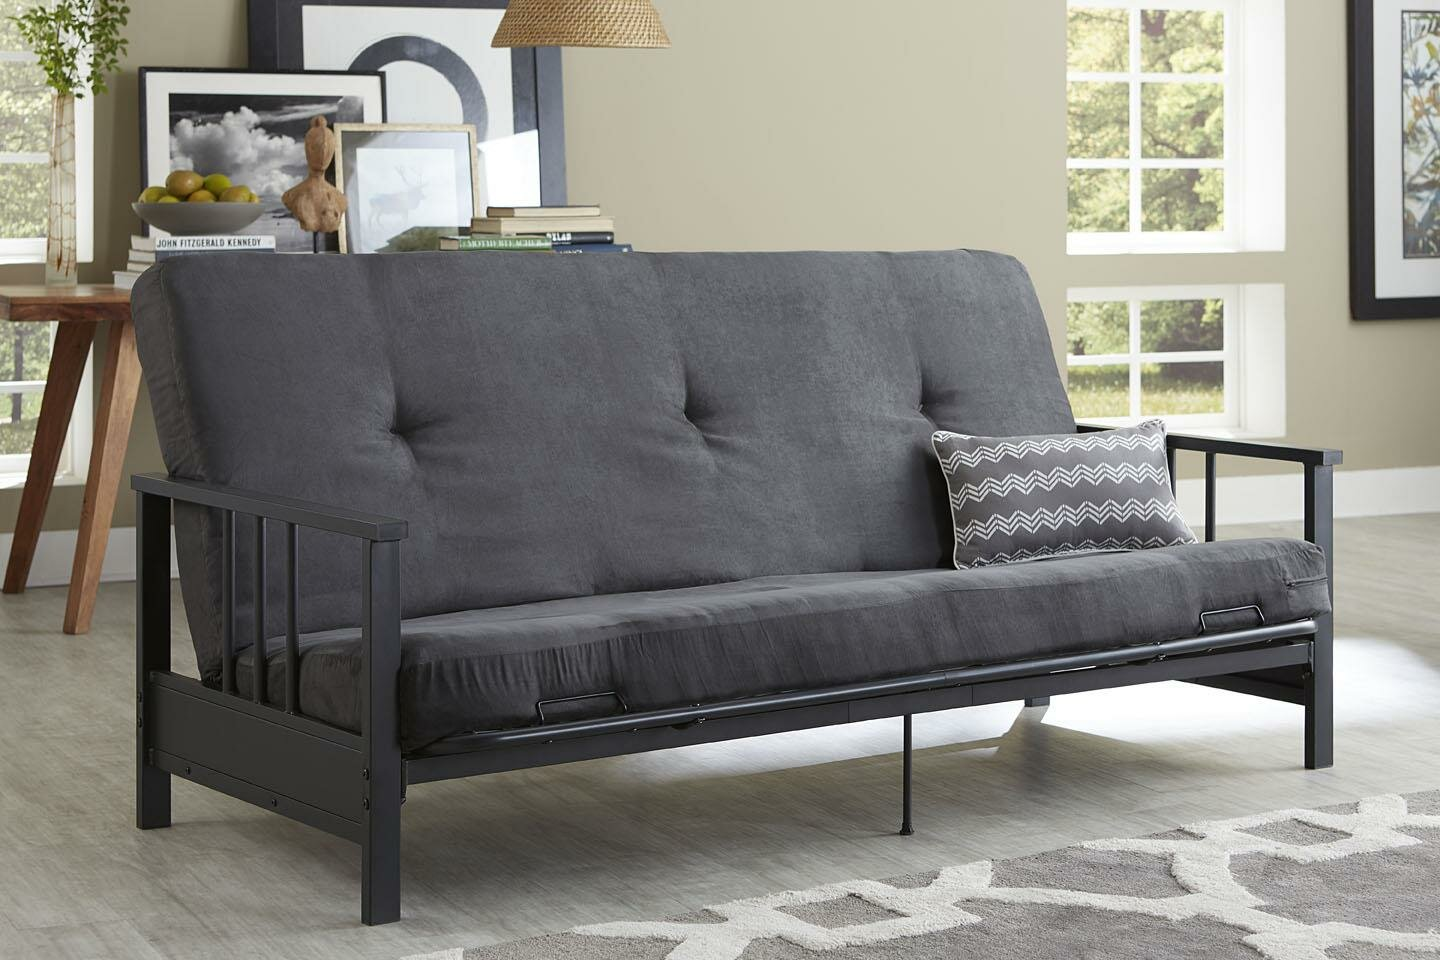 futon en providence and futons dark walmart primo more international blue ip canada